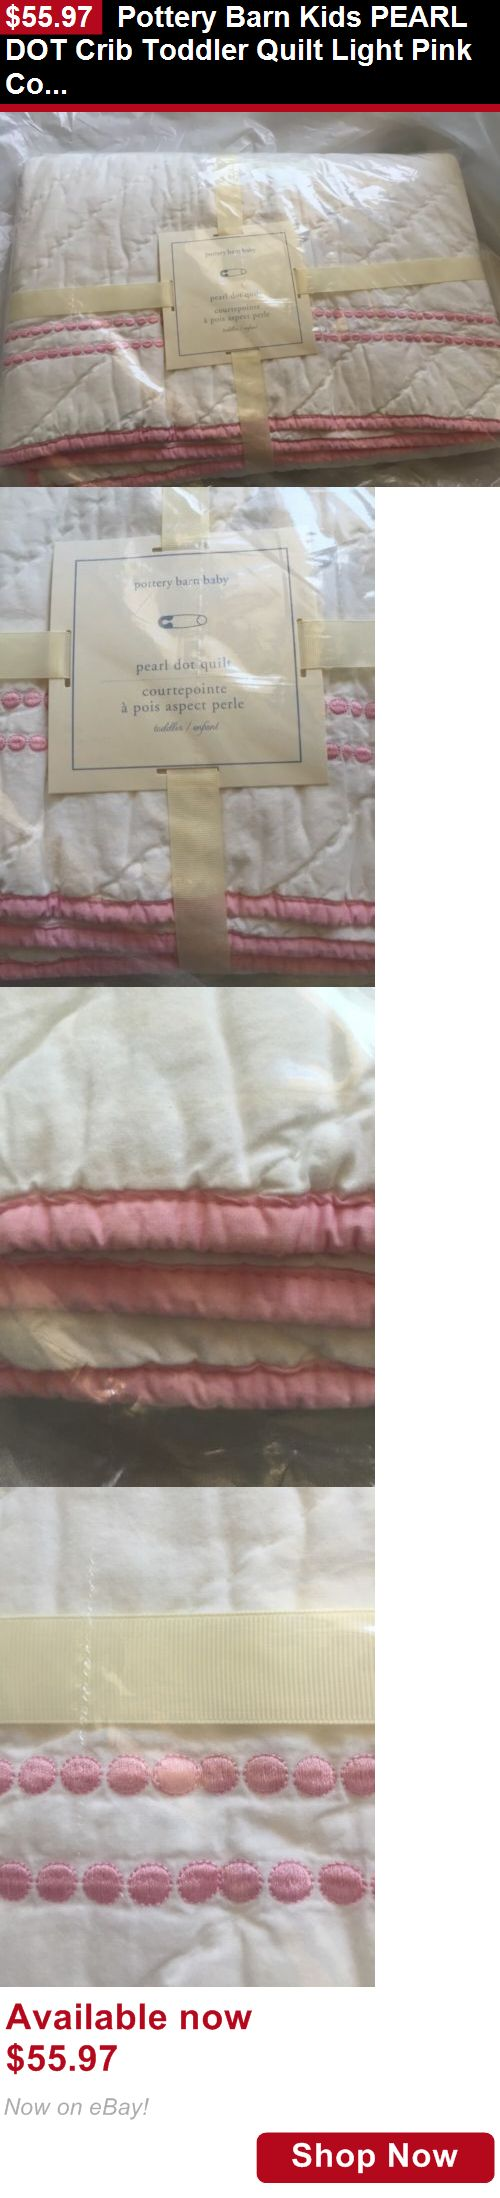 Quilts And Coverlets: Pottery Barn Kids Pearl Dot Crib Toddler Quilt Light Pink Color Nib BUY IT NOW ONLY: $55.97